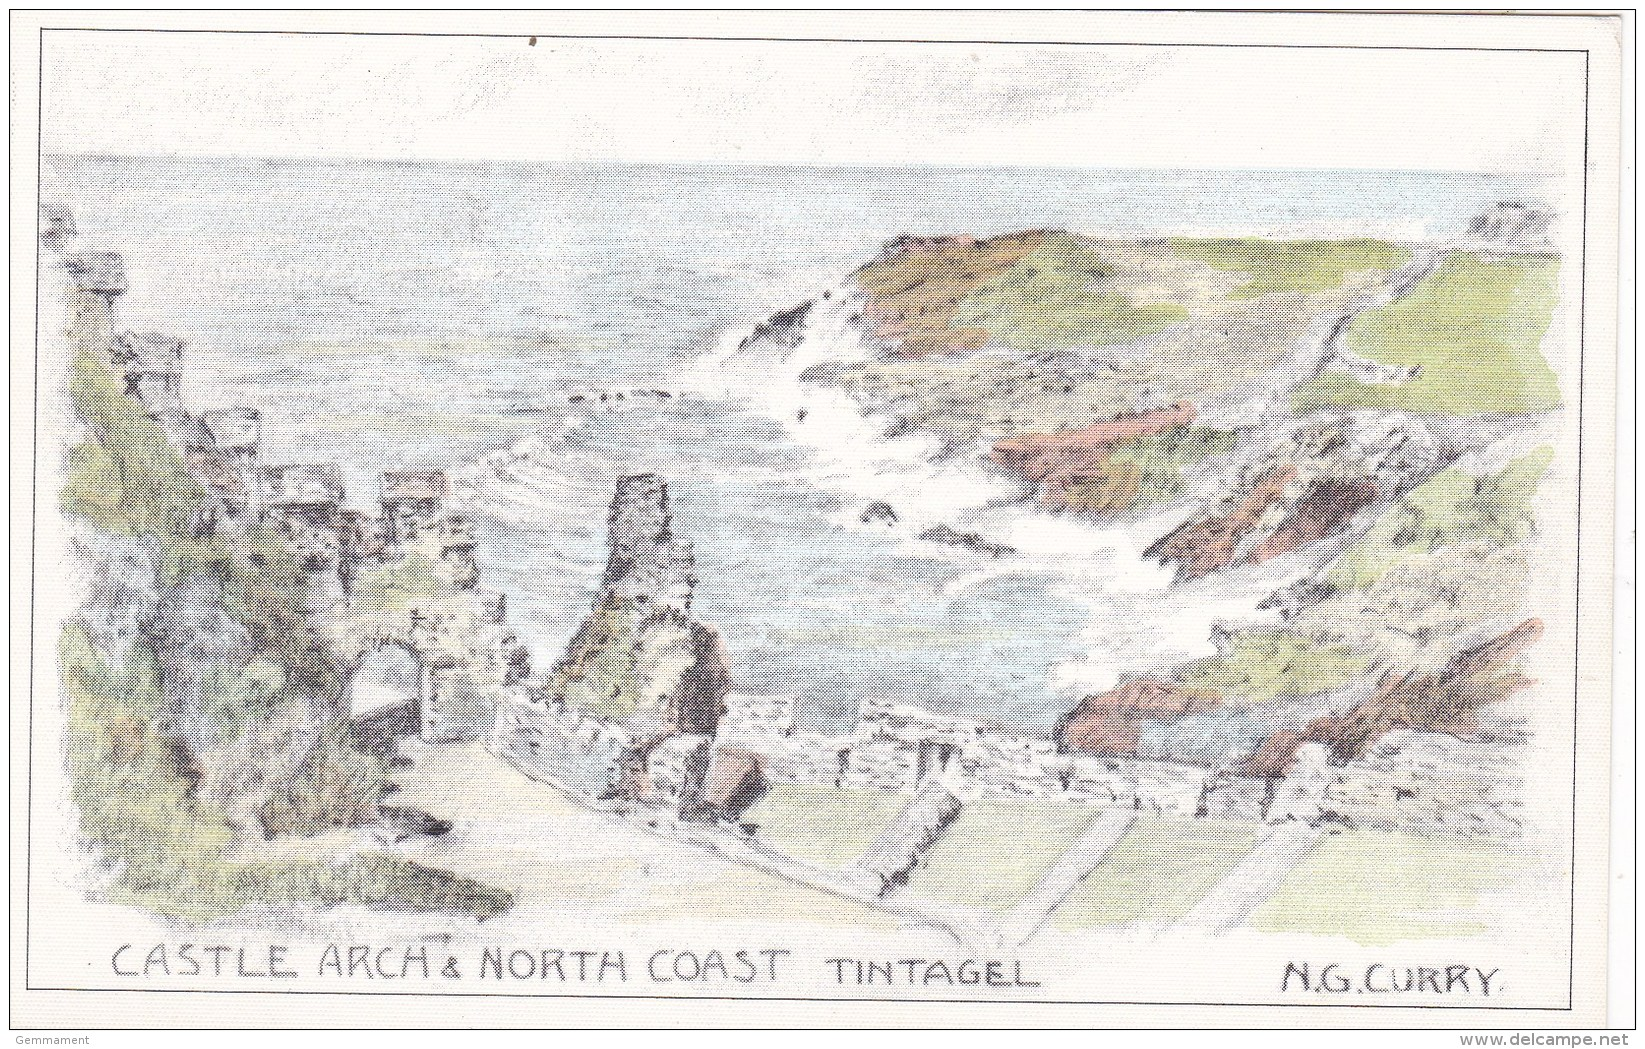 TINTAGEL - CASTLE ARCH @ NORTH COAST. N.G. CURRY - Unclassified